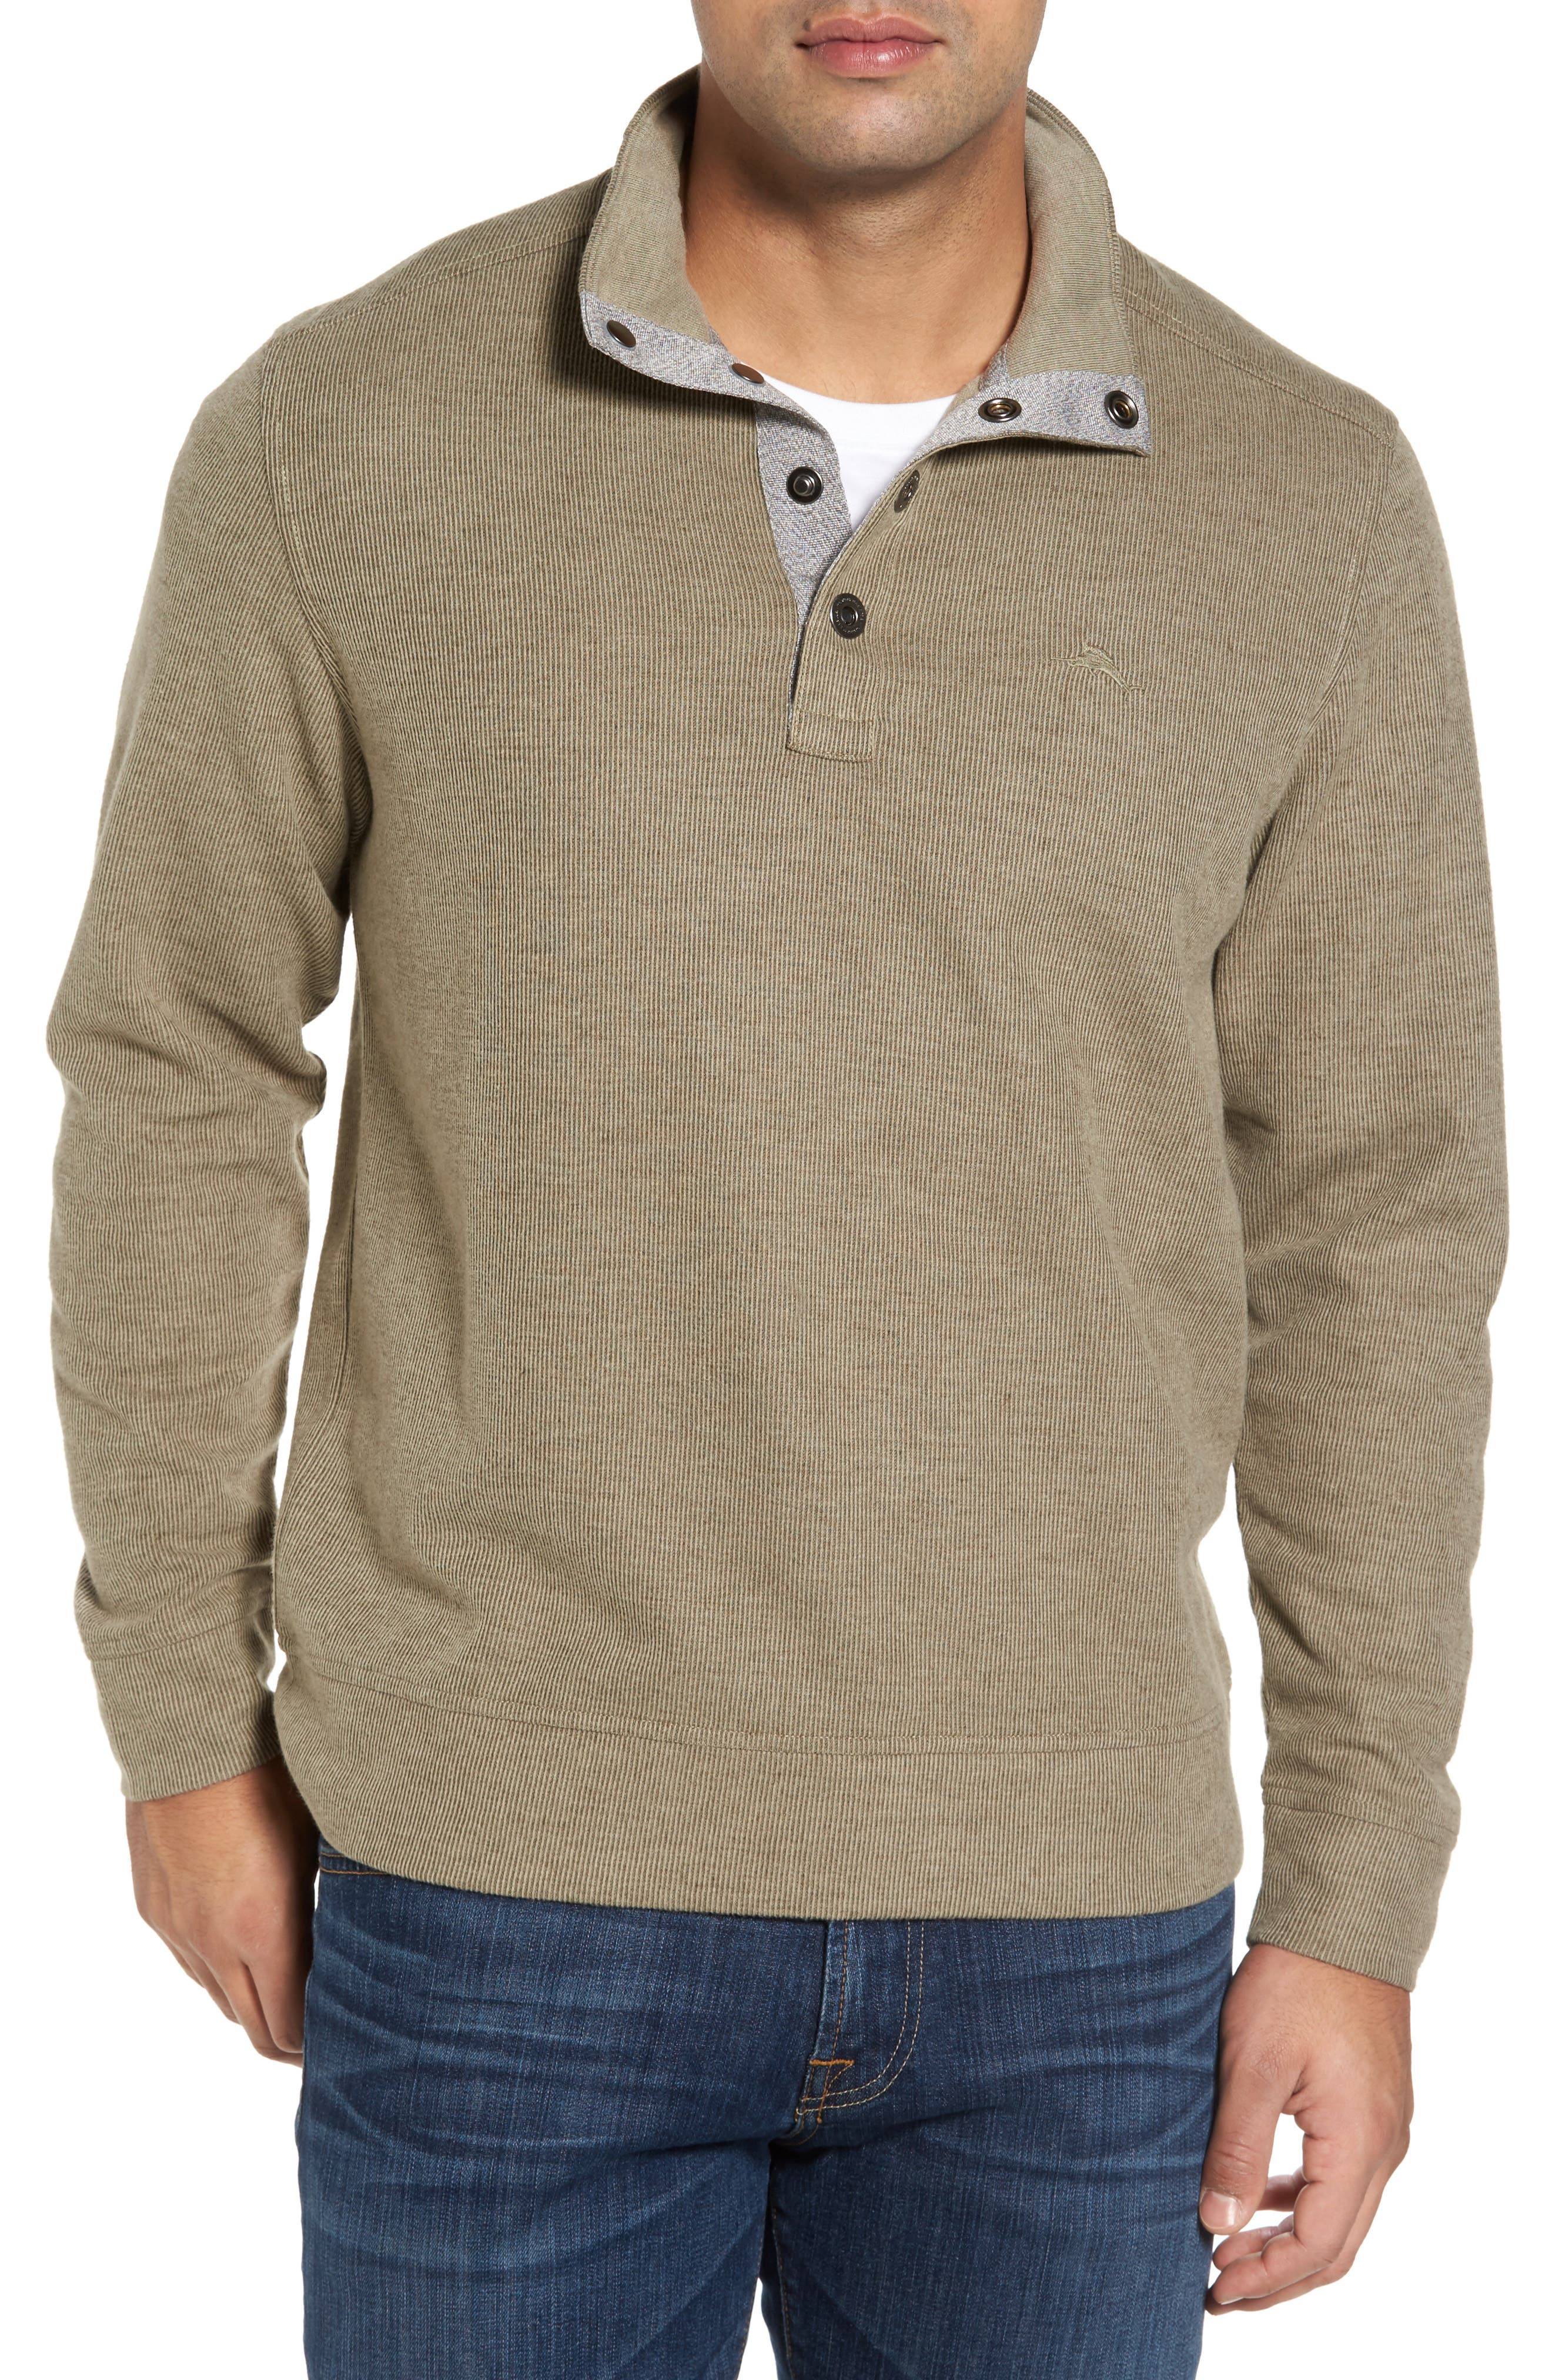 Cold Springs Snap Mock Neck Sweater,                             Main thumbnail 3, color,